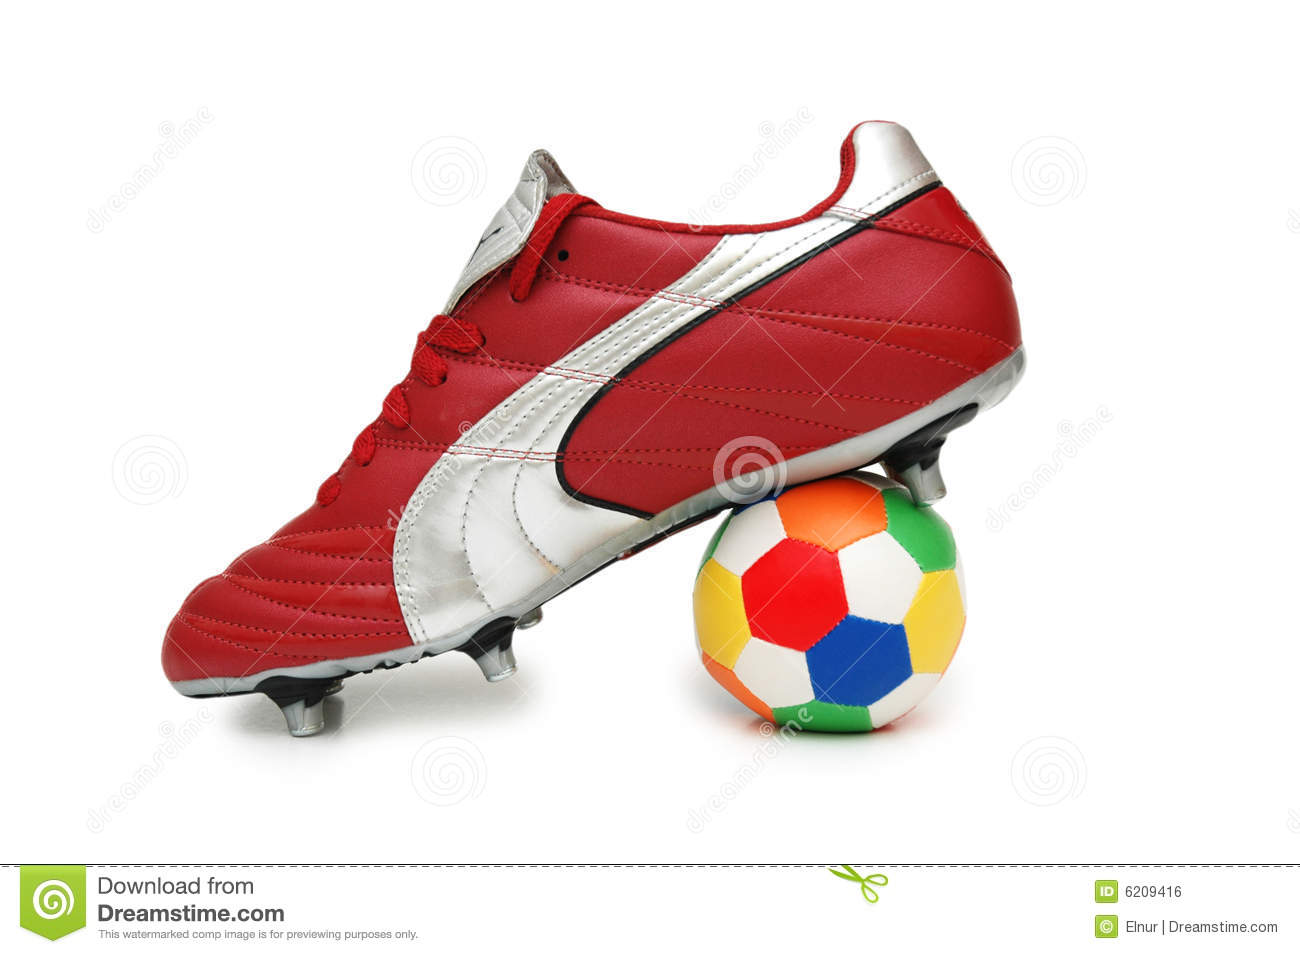 football shoes clipart - photo #22